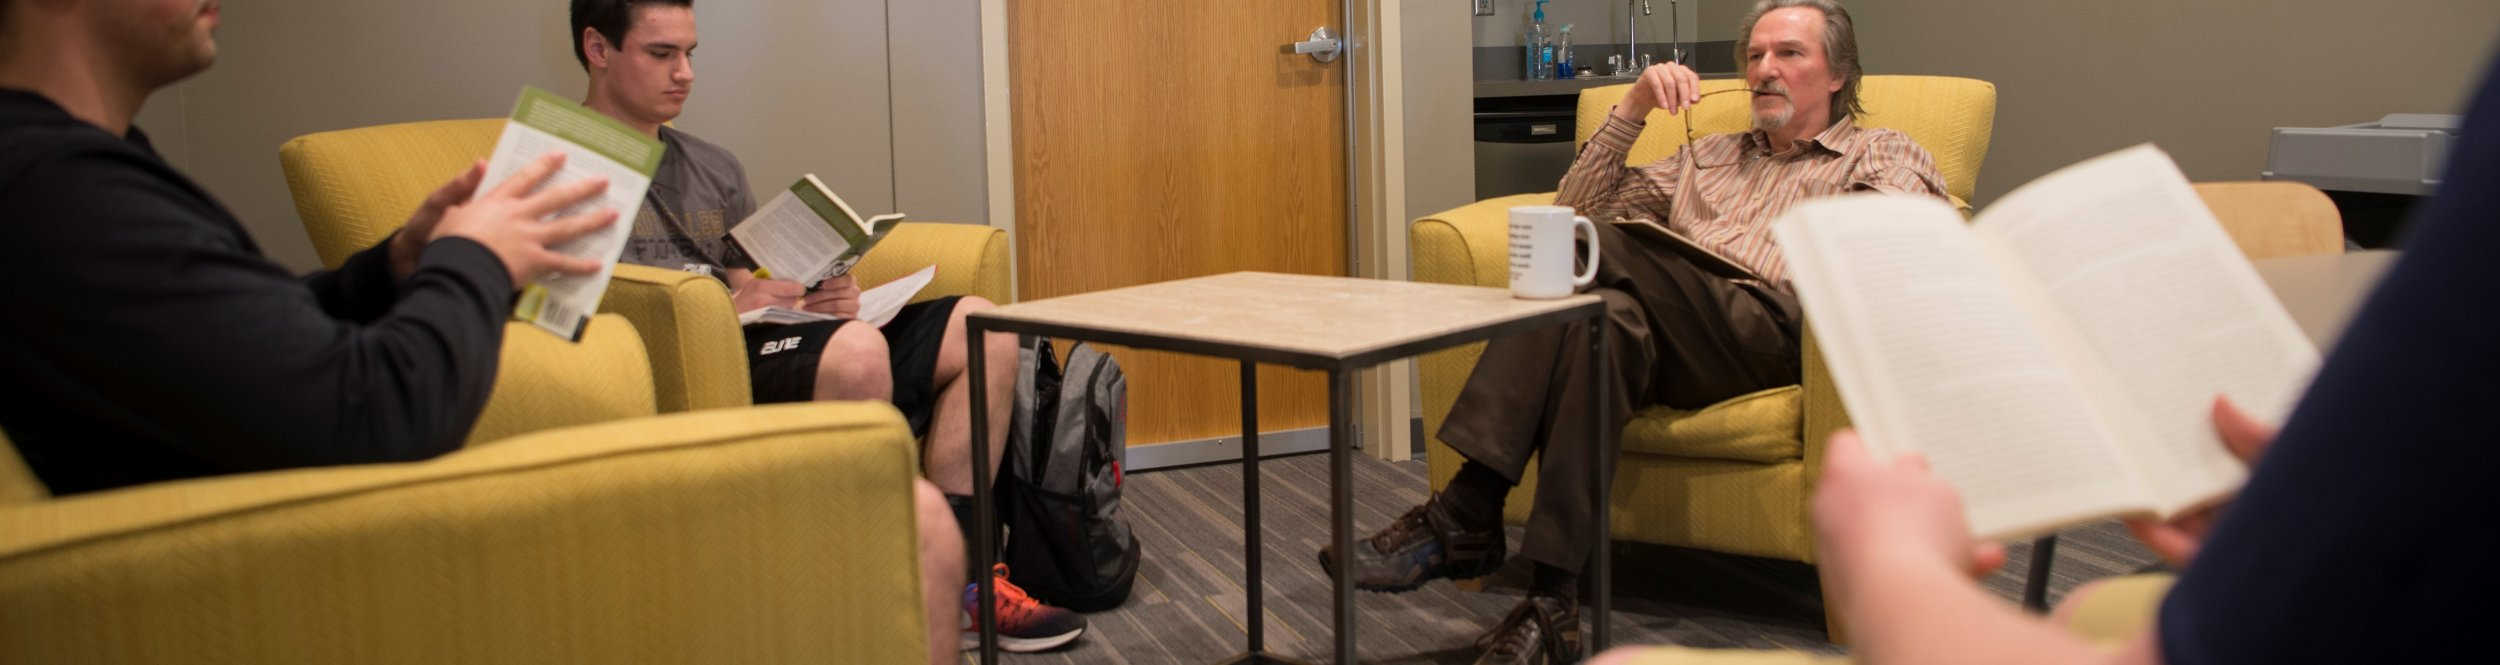 A philosophy professor speaks with three students.